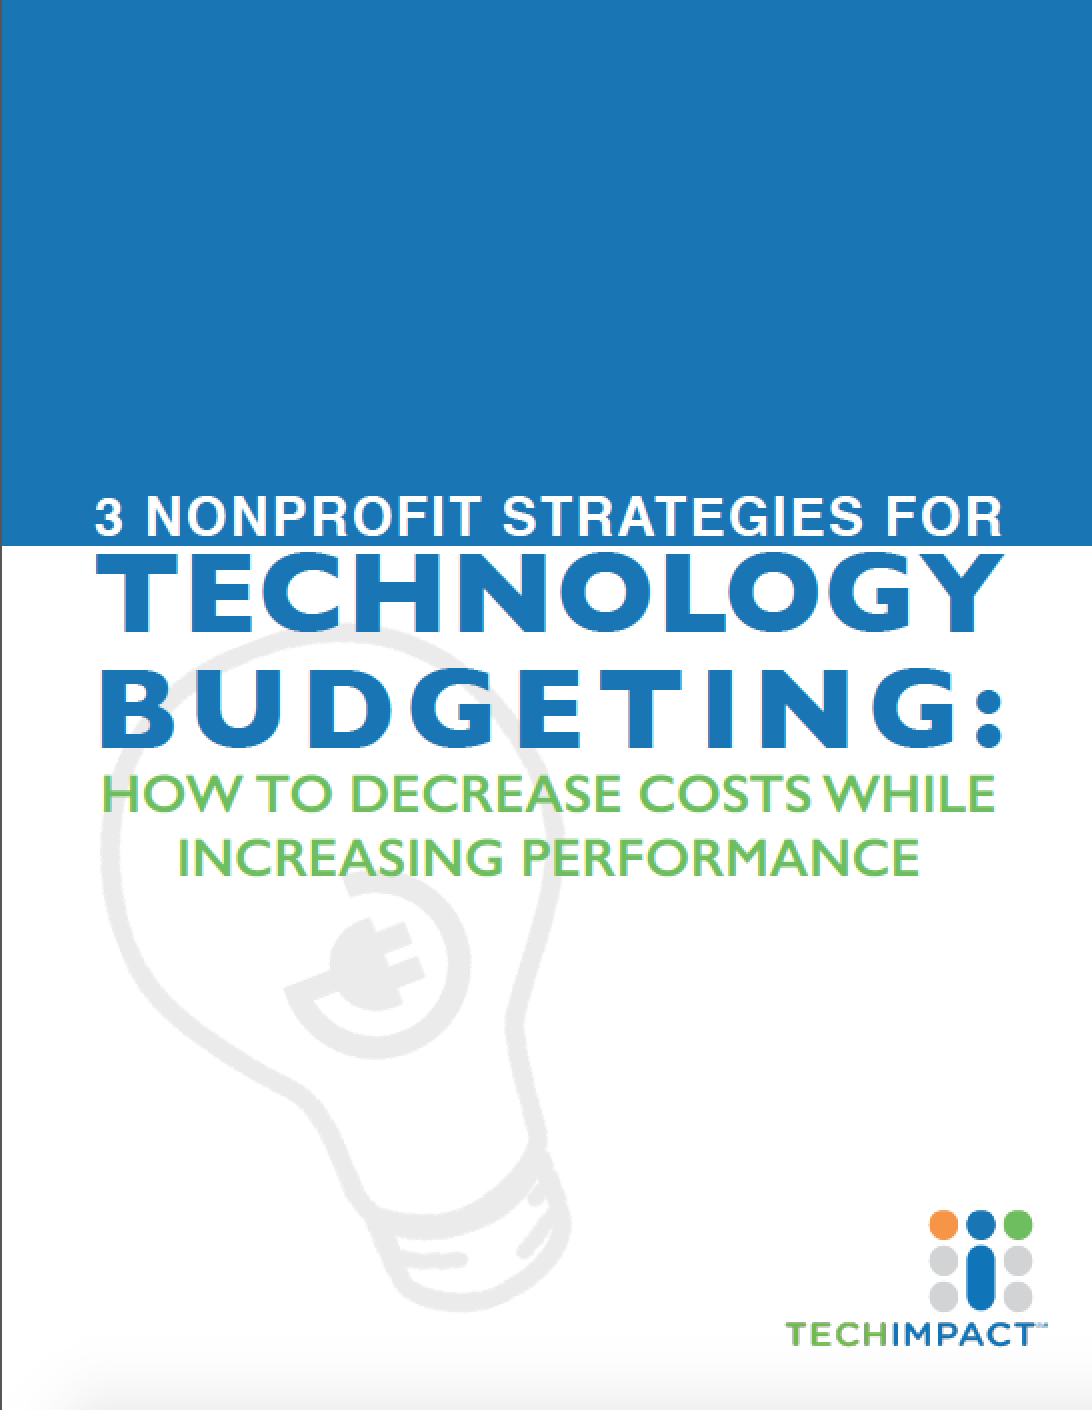 3 Nonprofit Strategies for Technology Budgeting Cover